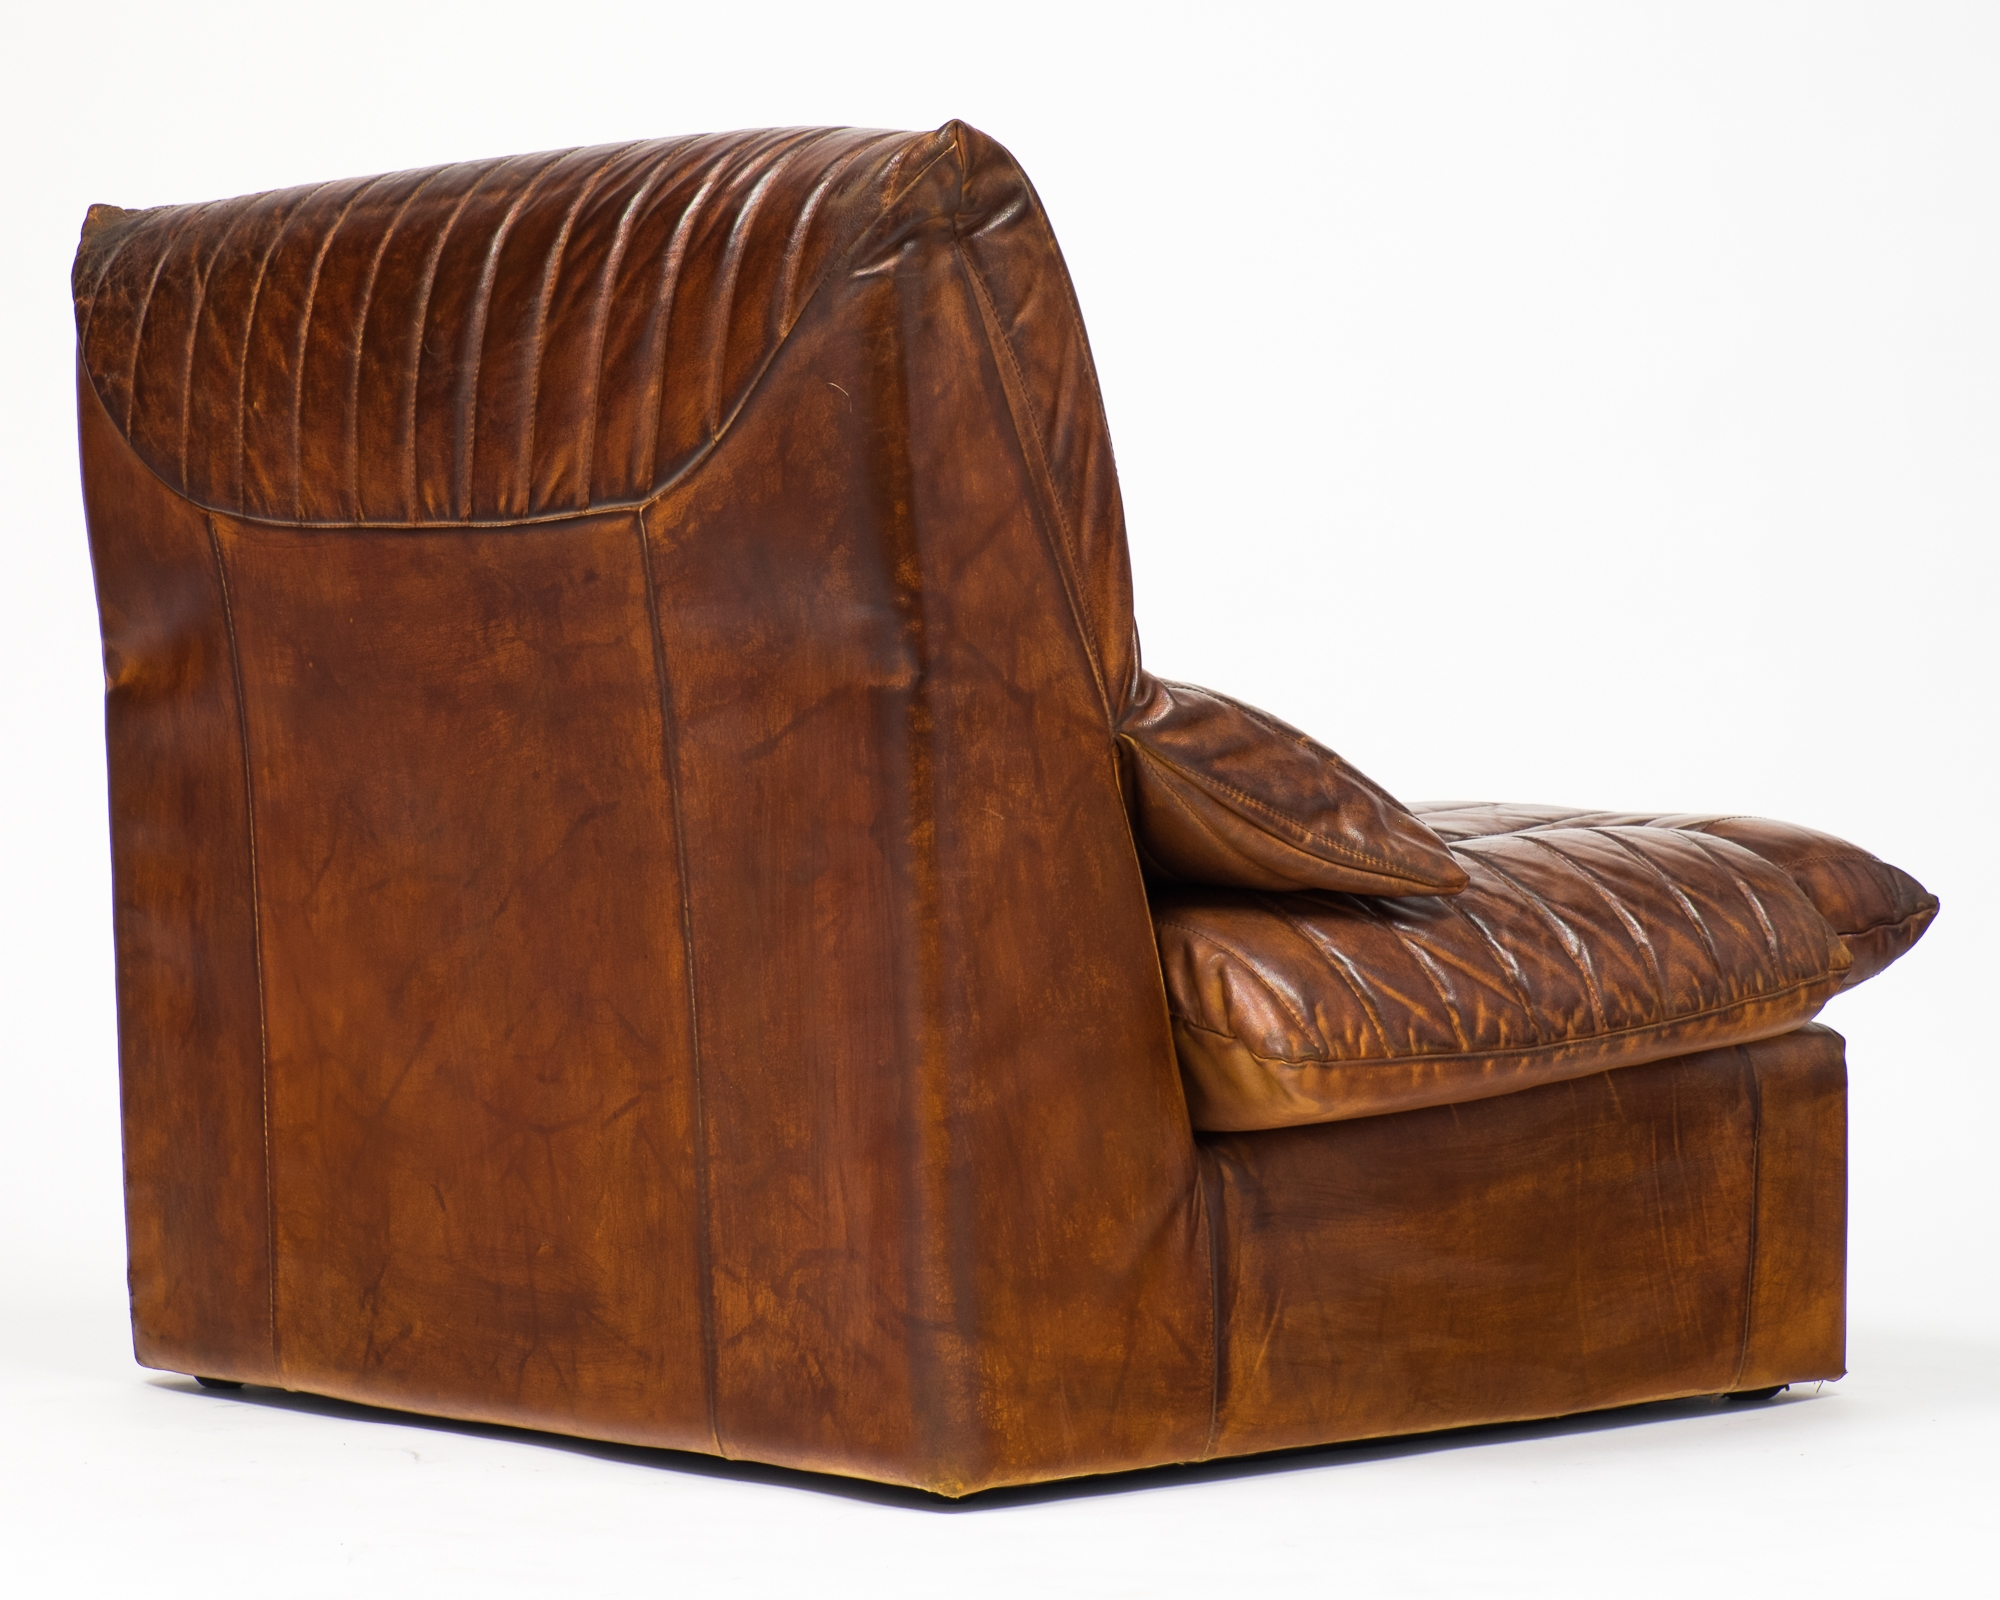 Vintage Roche Bobois Leather Armchairs Jean Marc Fray Within Vintage Leather Armchairs (Image 14 of 15)